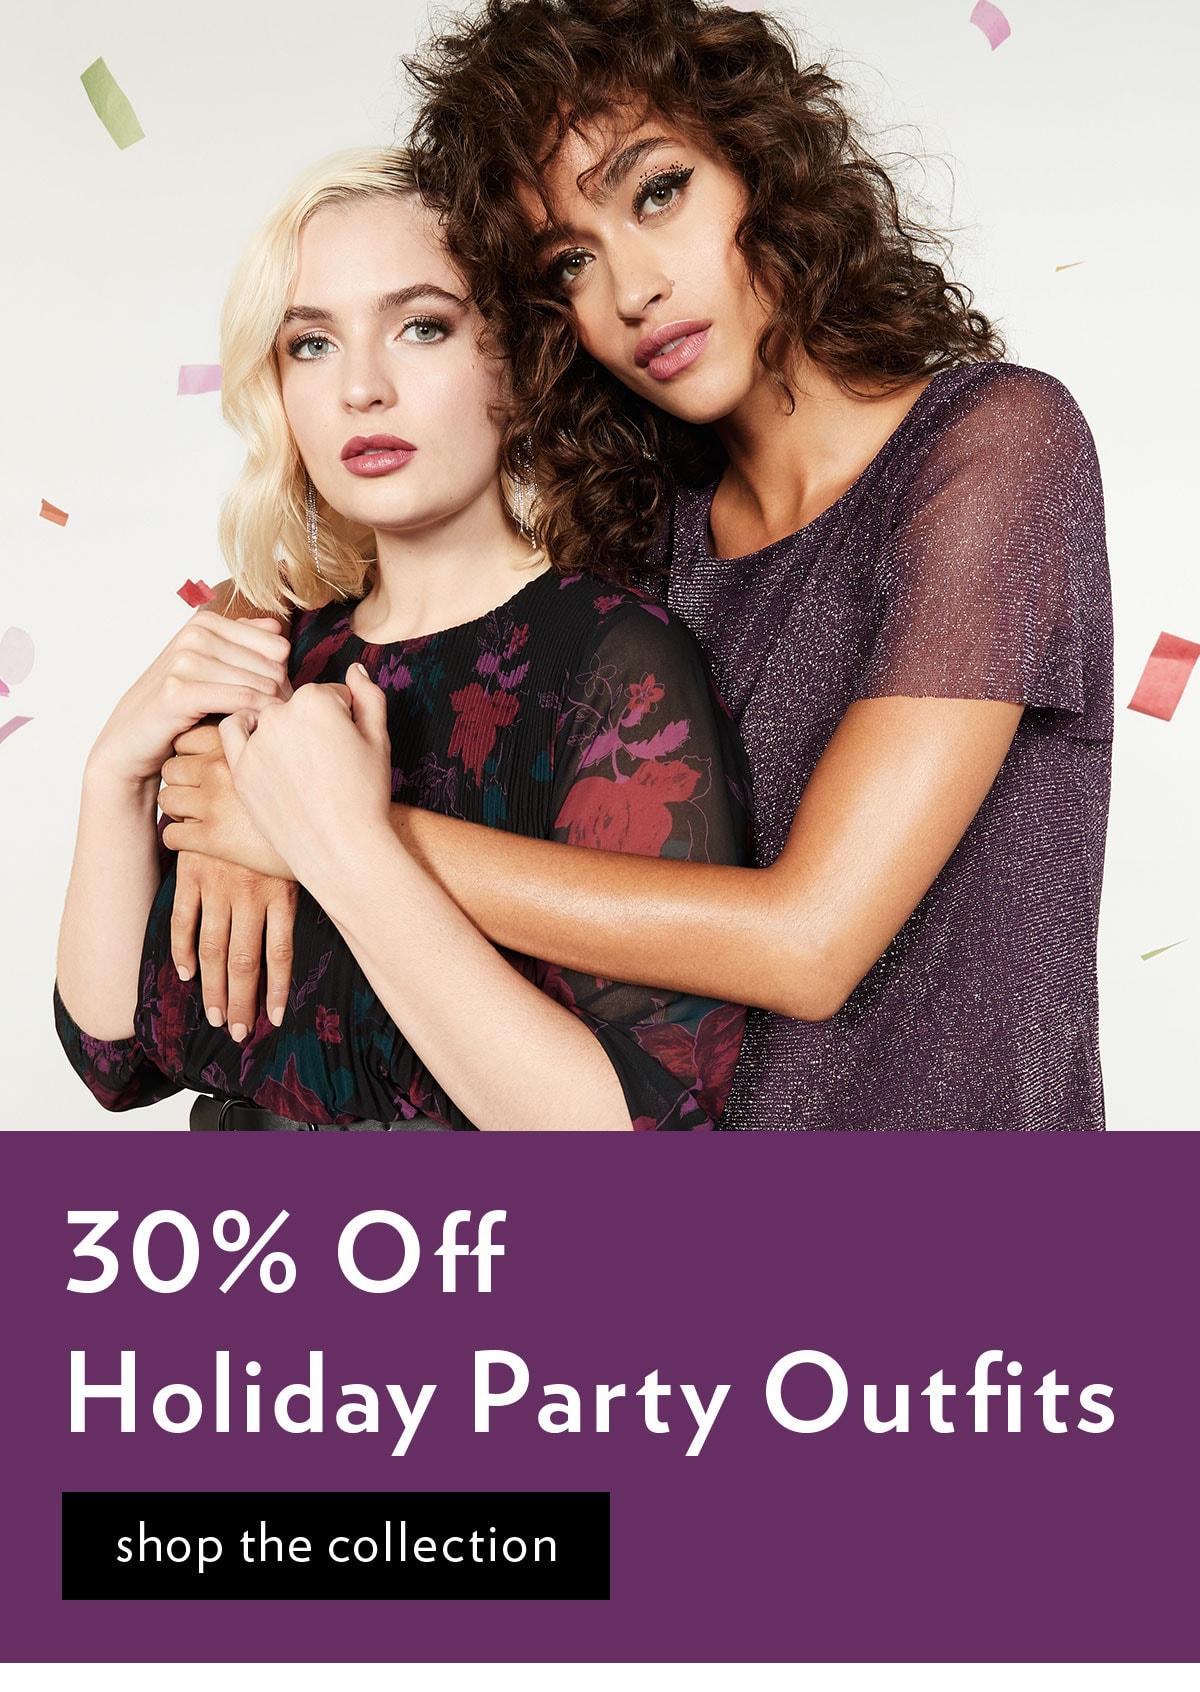 30% Off Holiday Party Outfits